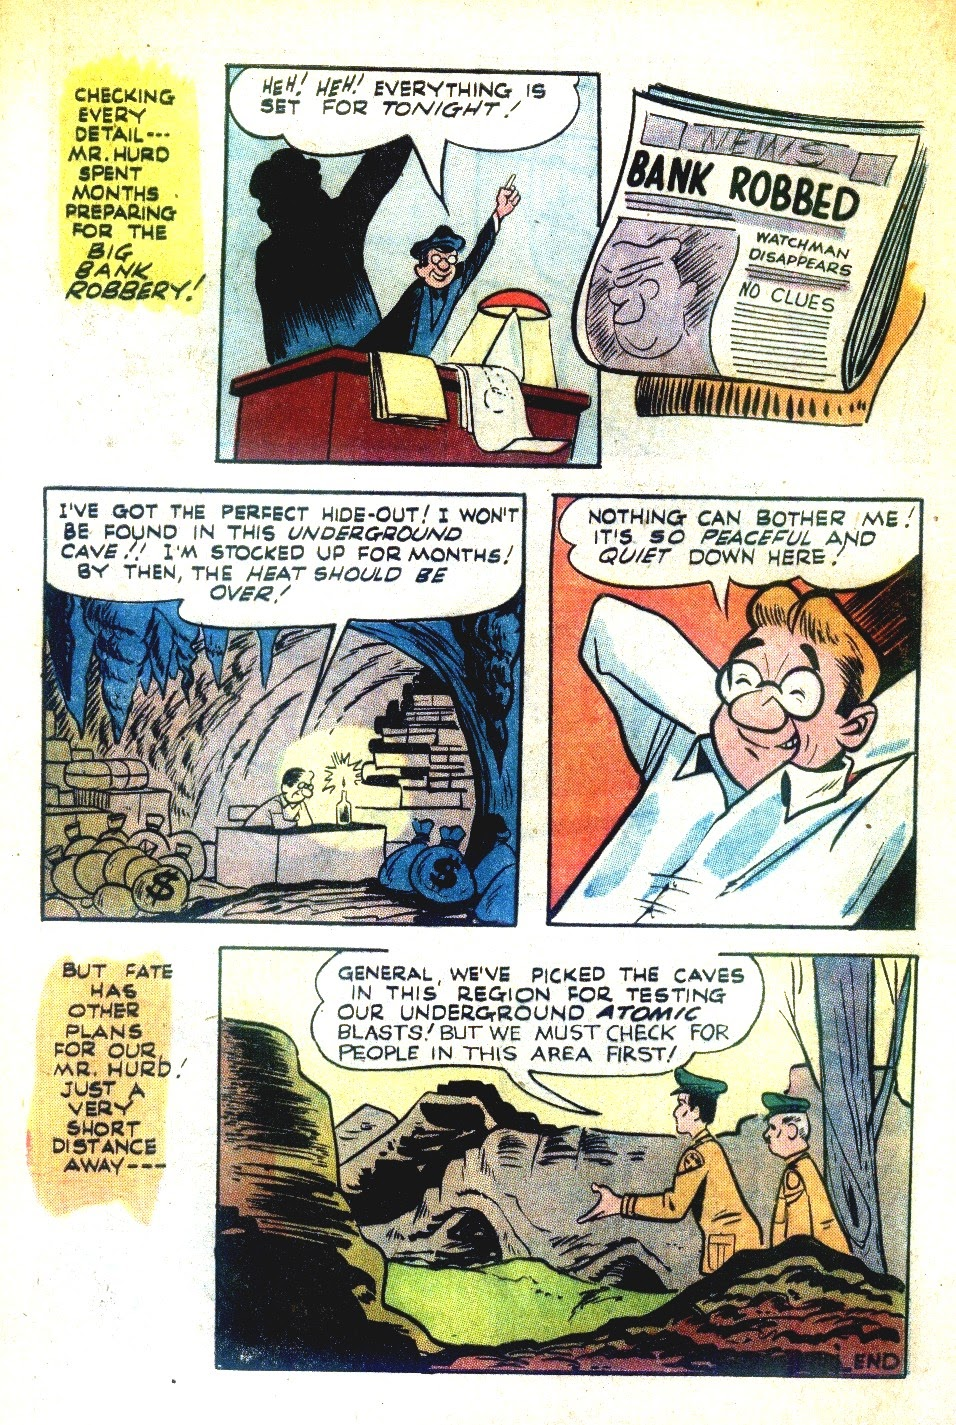 Read online Tales Calculated to Drive You Bats comic -  Issue #7 - 24